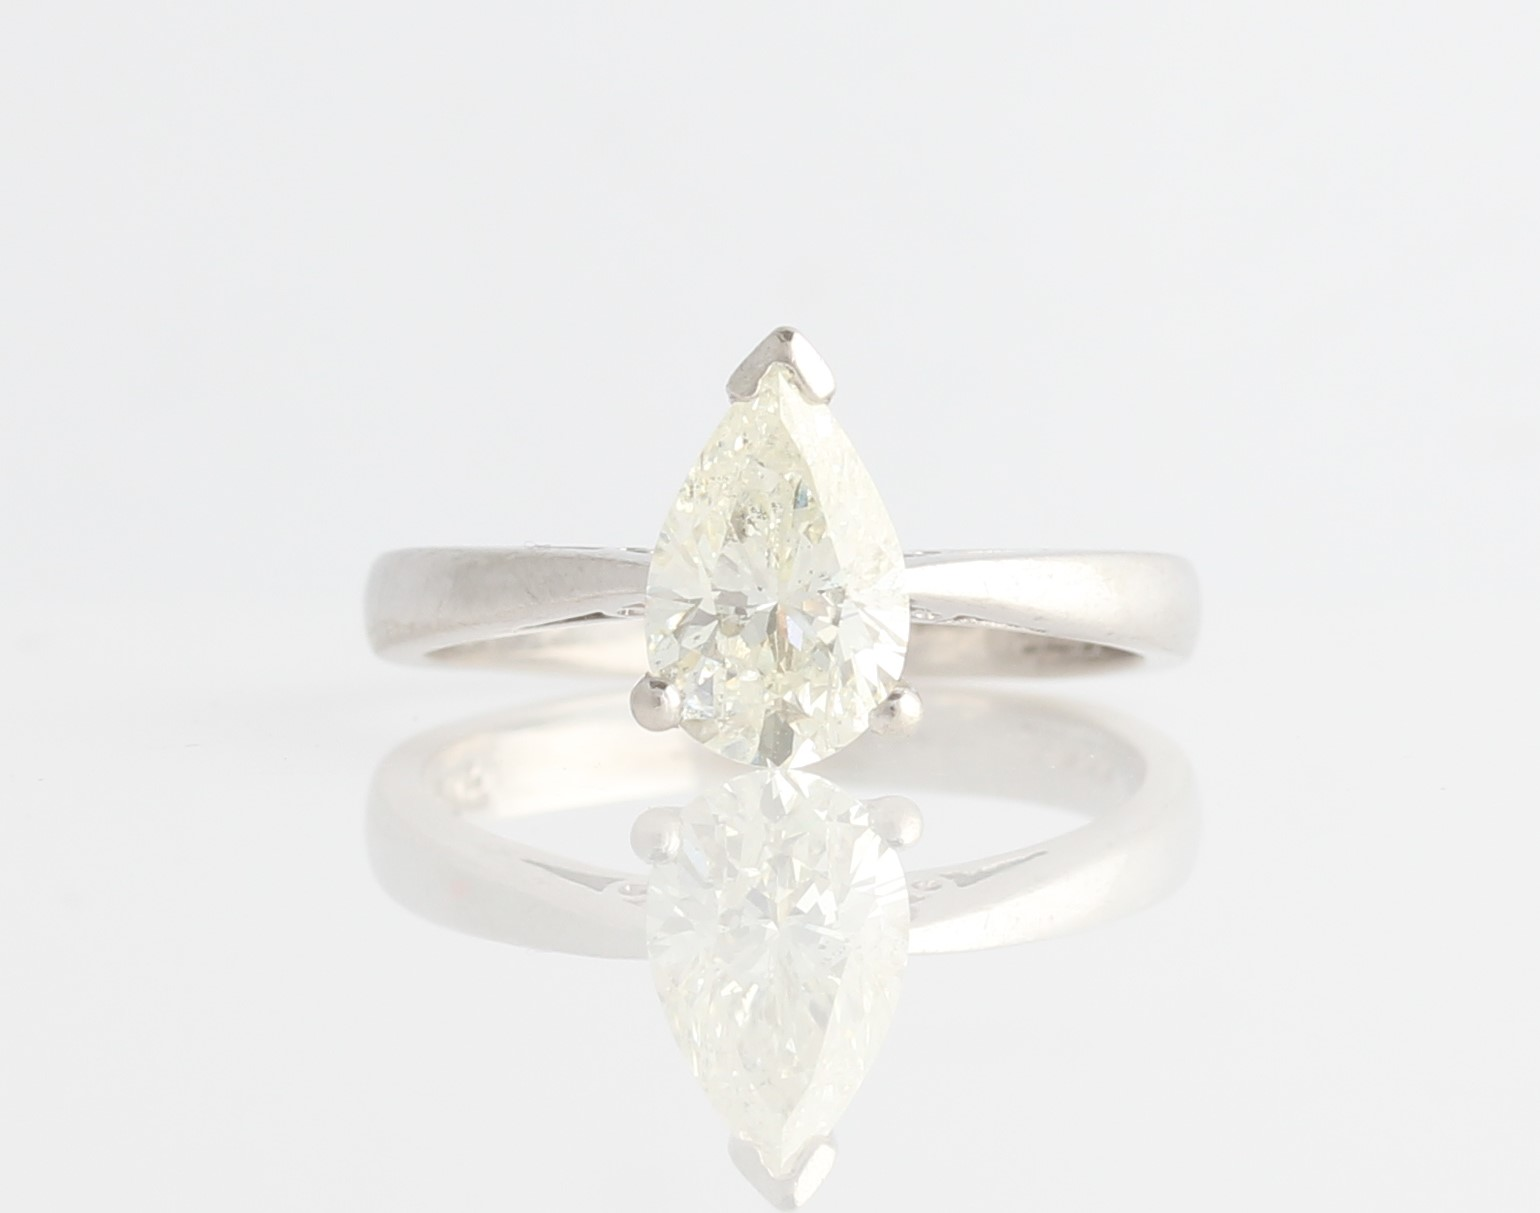 Lot 17 - A platinum diamond solitaire ring, set with a pear cut diamond, measuring approx. 1.28ct, hallmarked